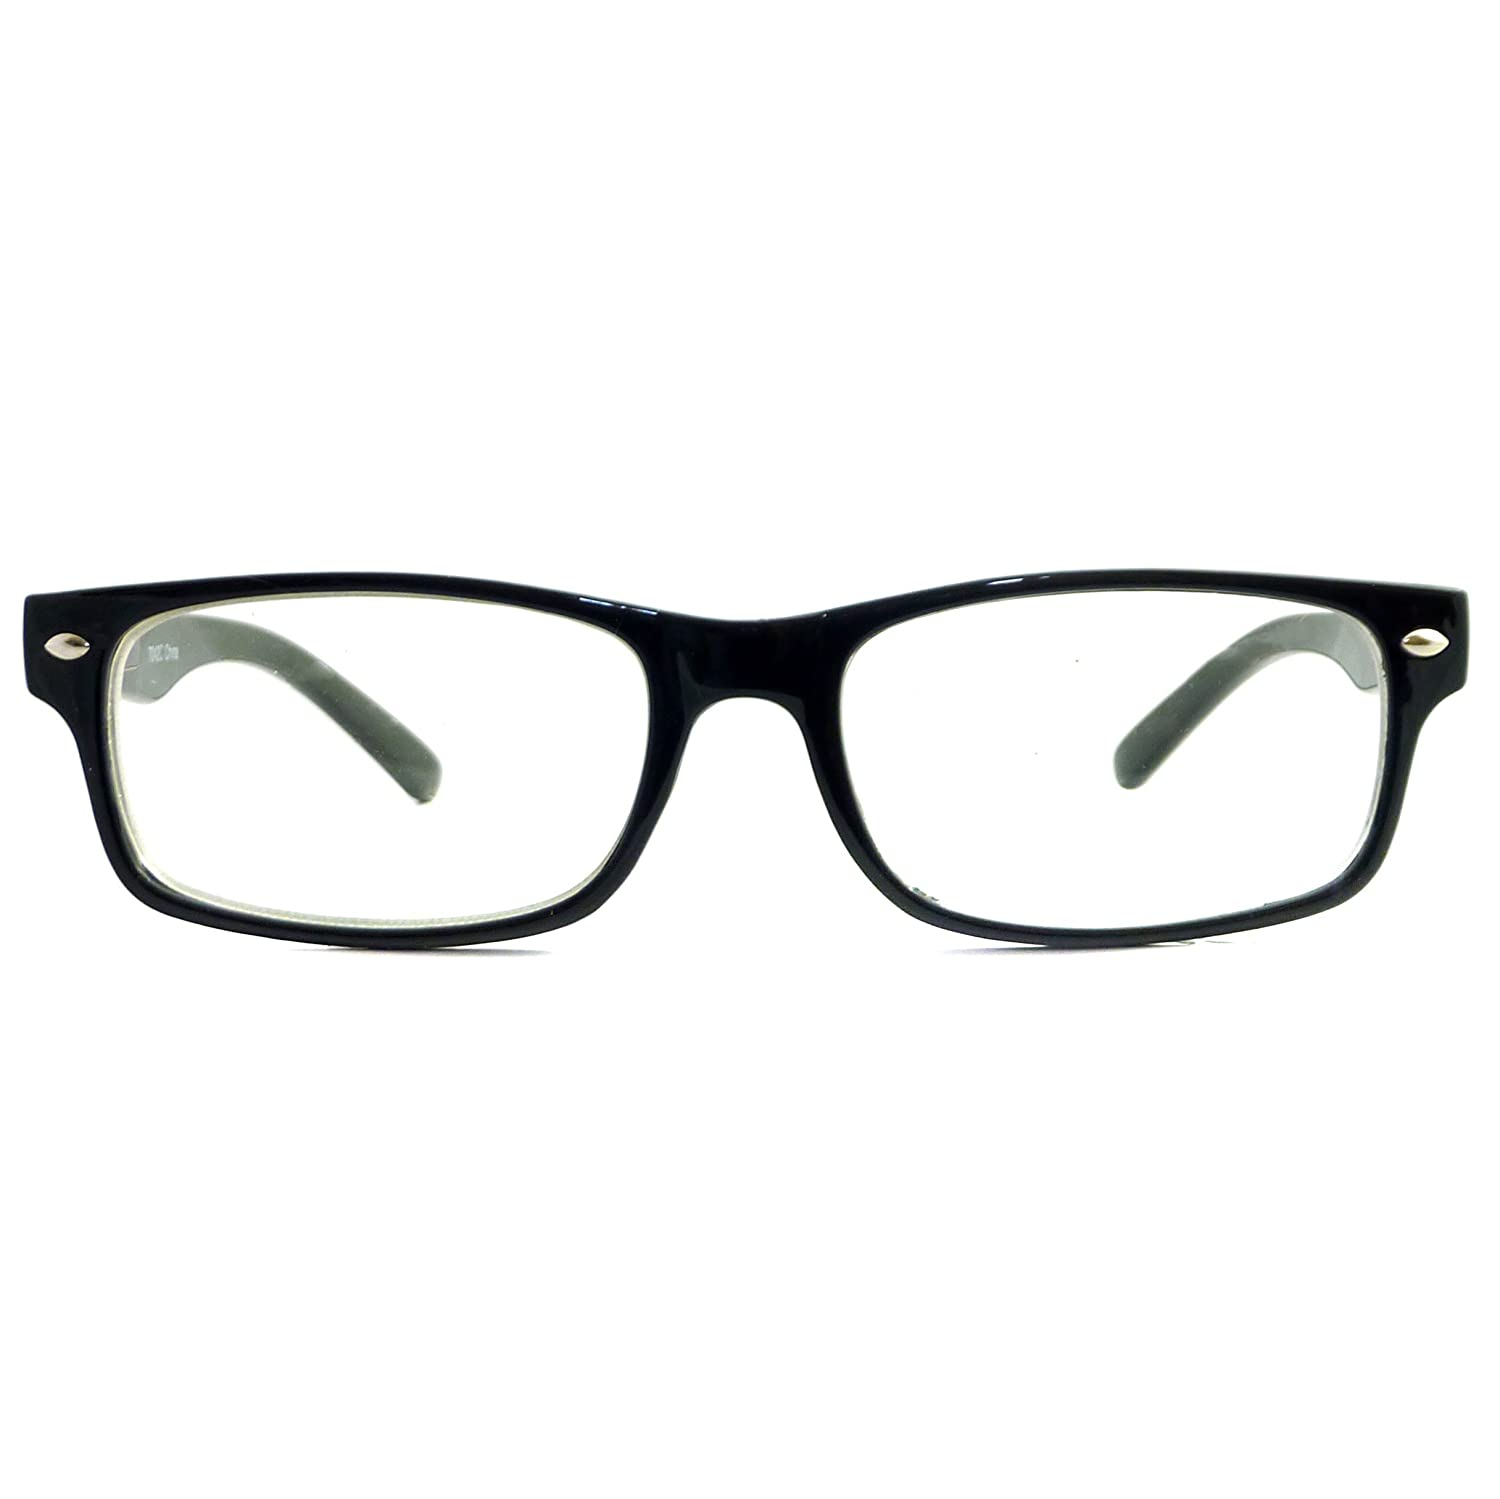 8df7bb7ed363 Amazon.com  RETRO Nerd Thin Men Women Rectangular Frame Clear Lens Eye  Glasses BLACK  Clothing